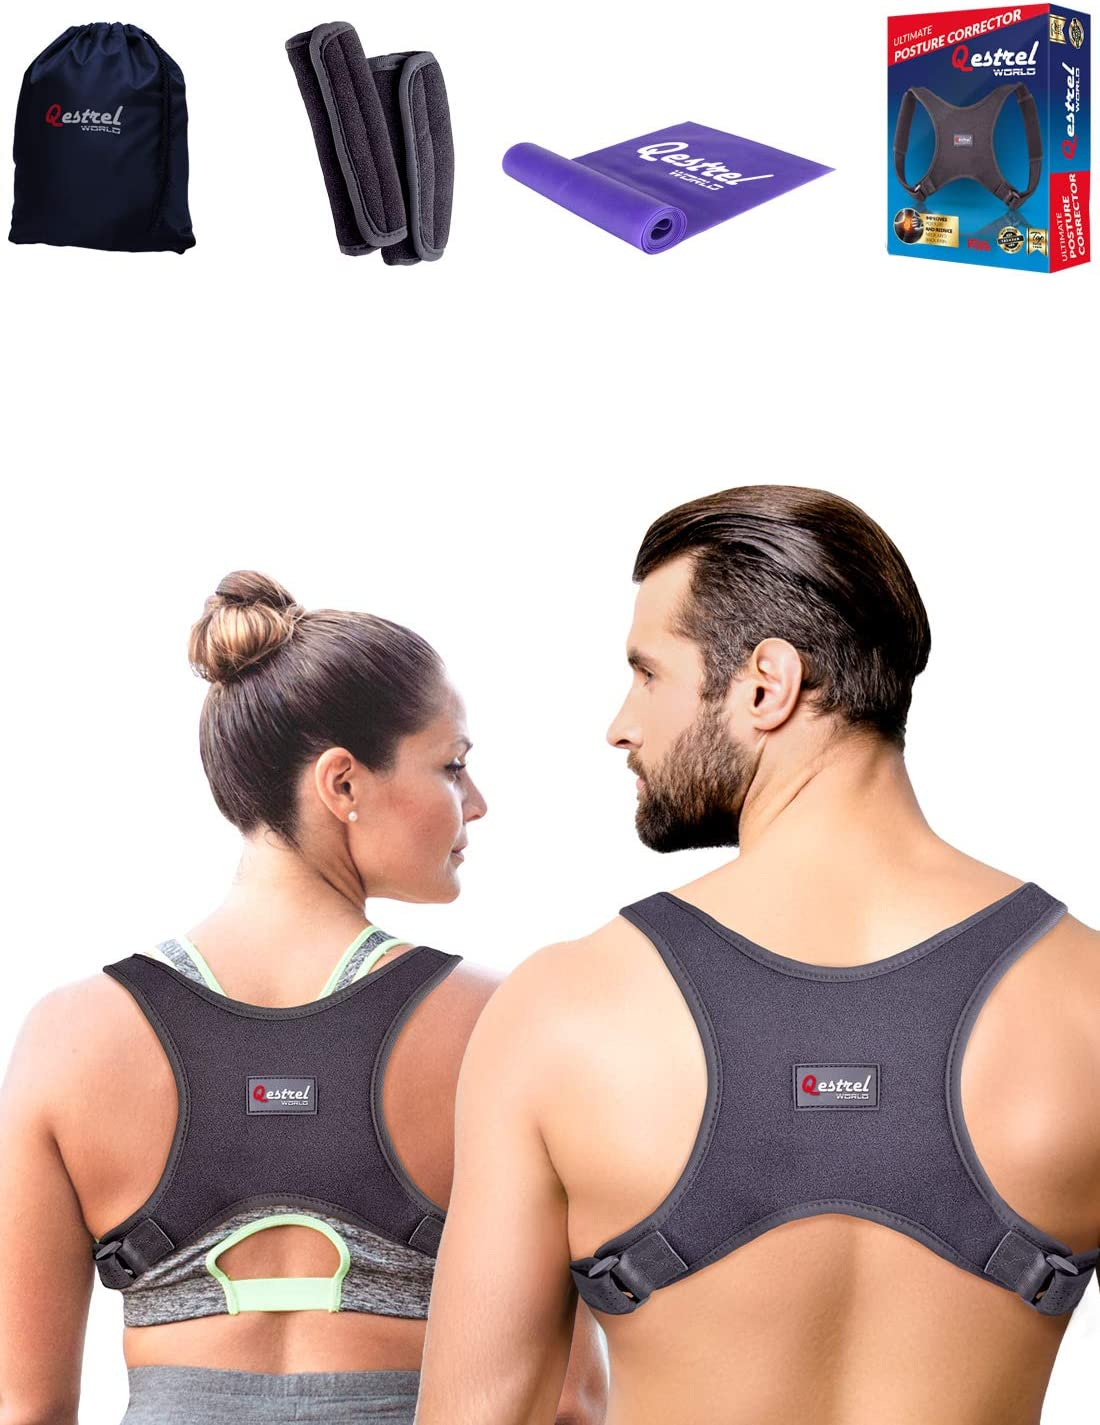 Back Straightener Posture Corrector for Women and Men - Shoulder Brace Back Posture Corrector for Men - Upper Back Support and Neck Pain Relief - Under Clothes Back Brace for Neck & Shoulder